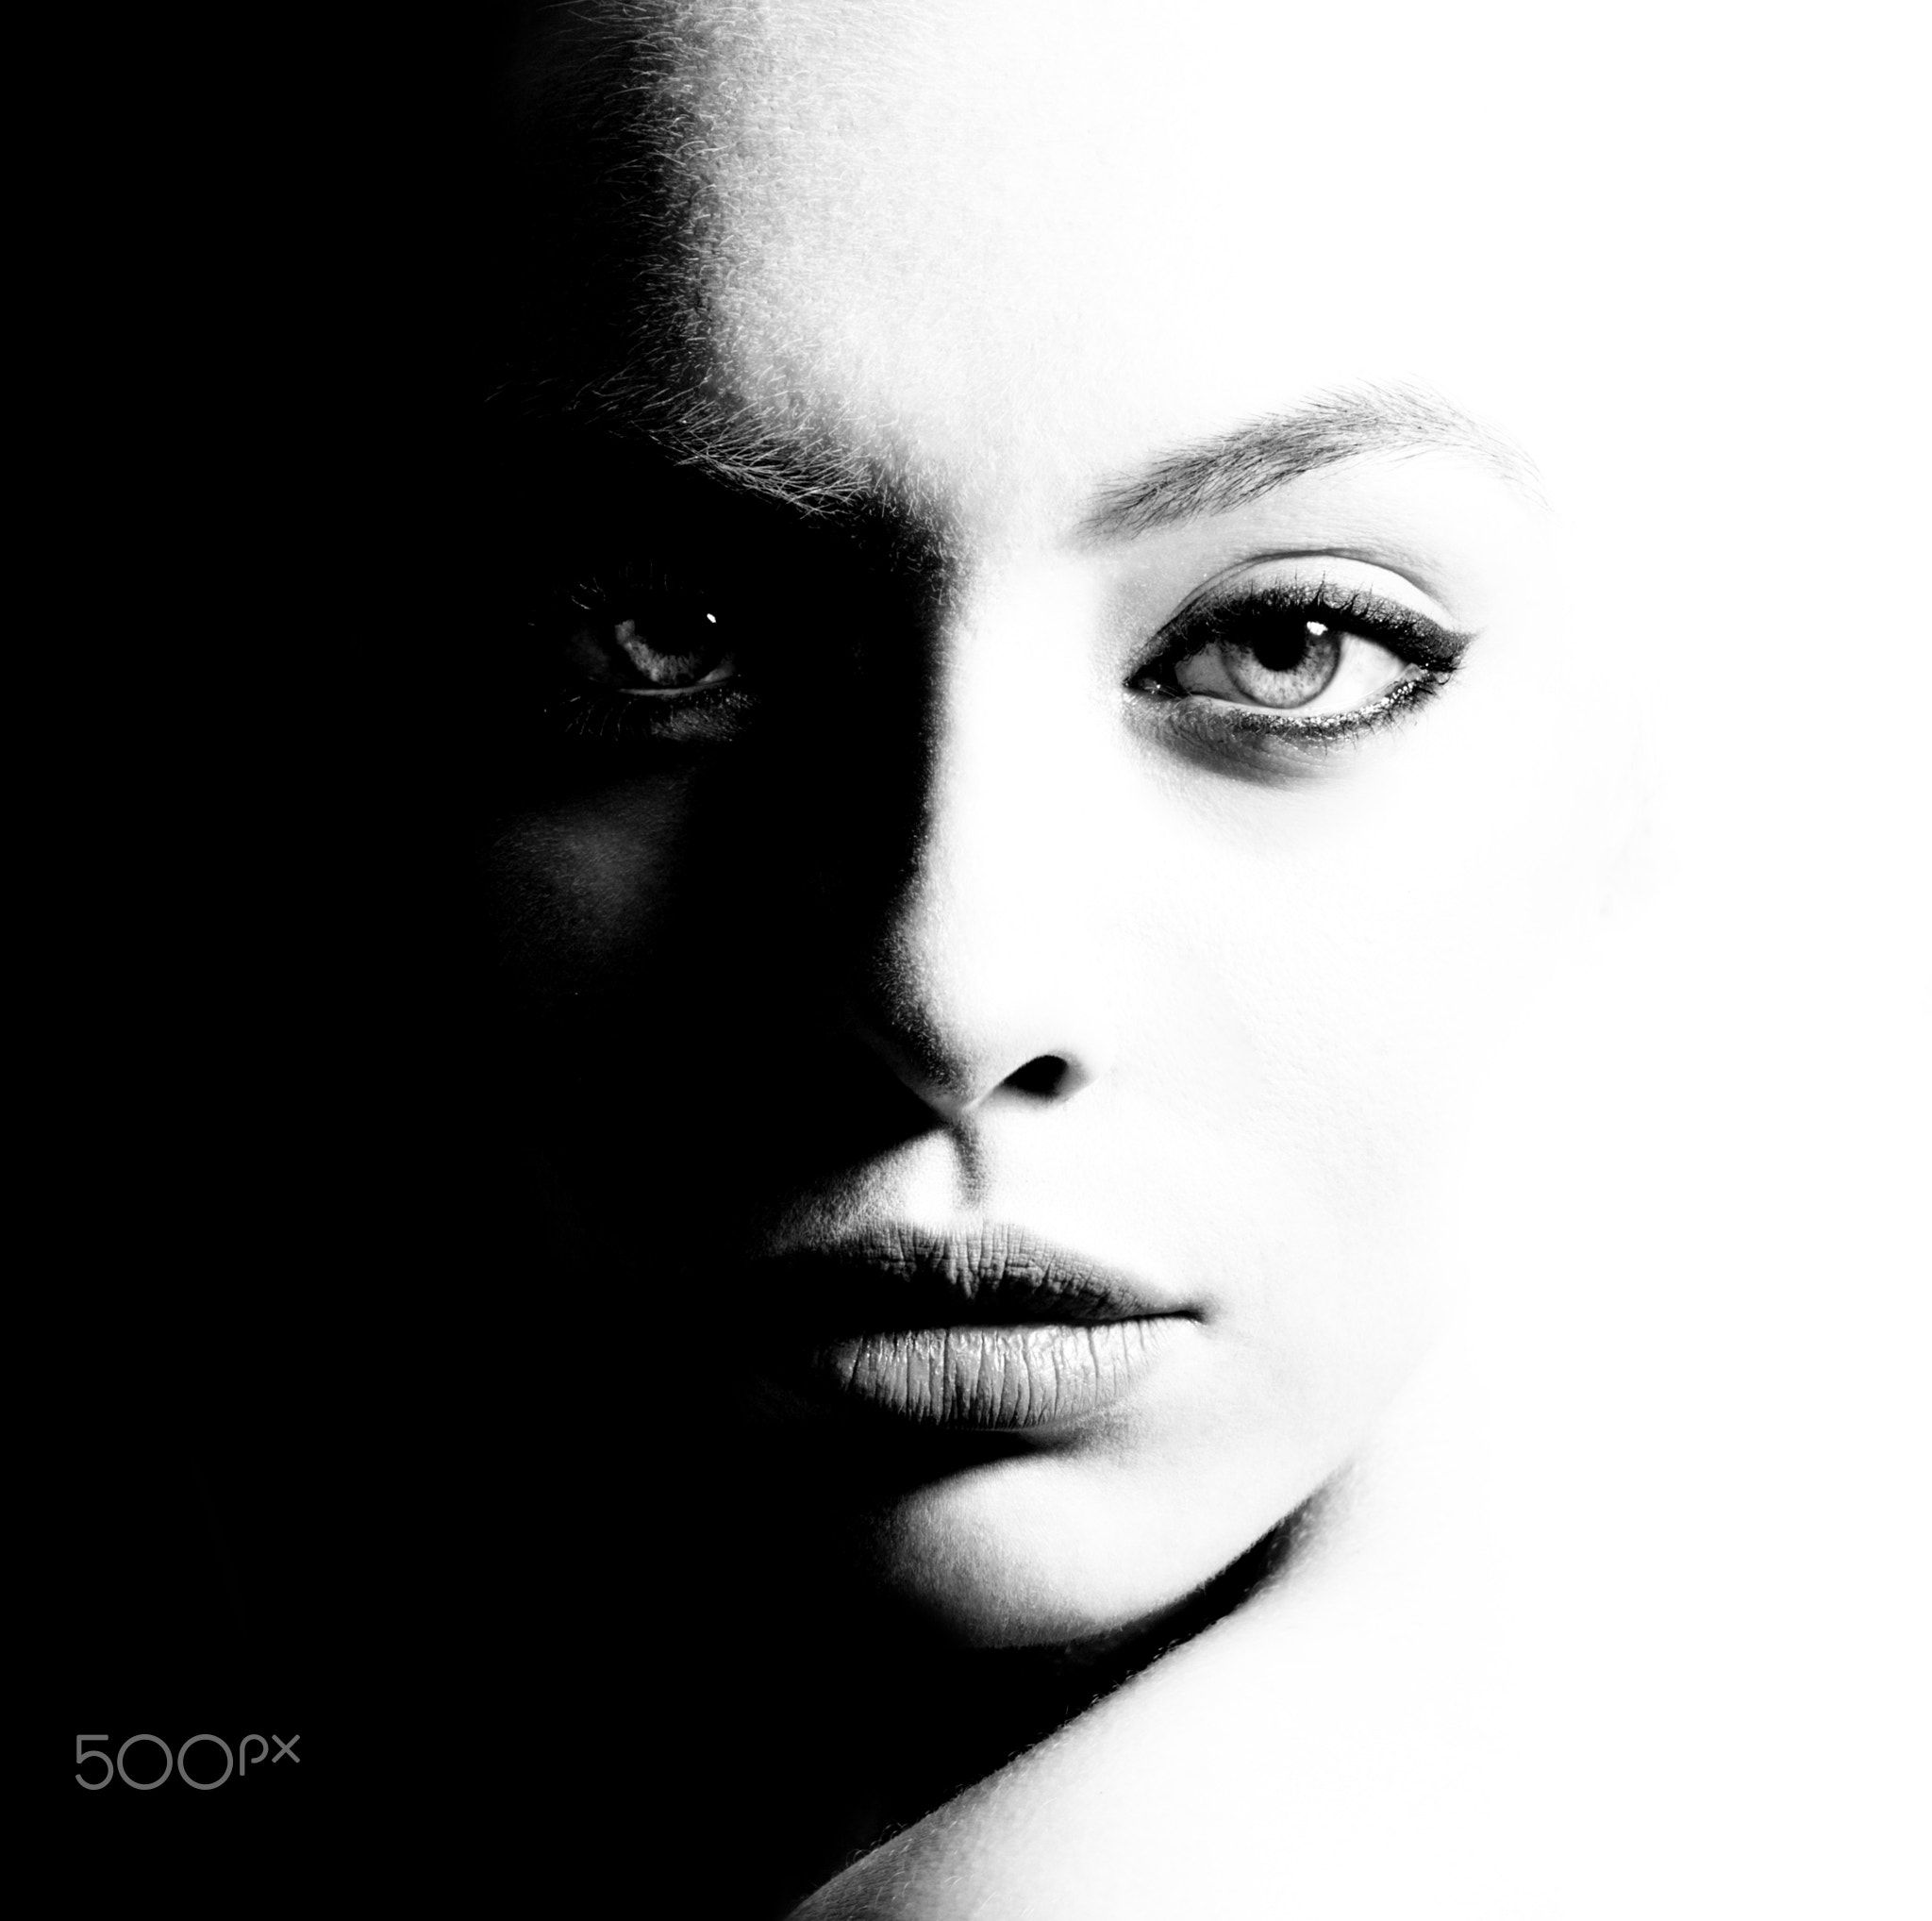 High contrast black and white portrait of a beautiful girl high contrast black and white portrait of a beautiful girl femininity and beauty free space